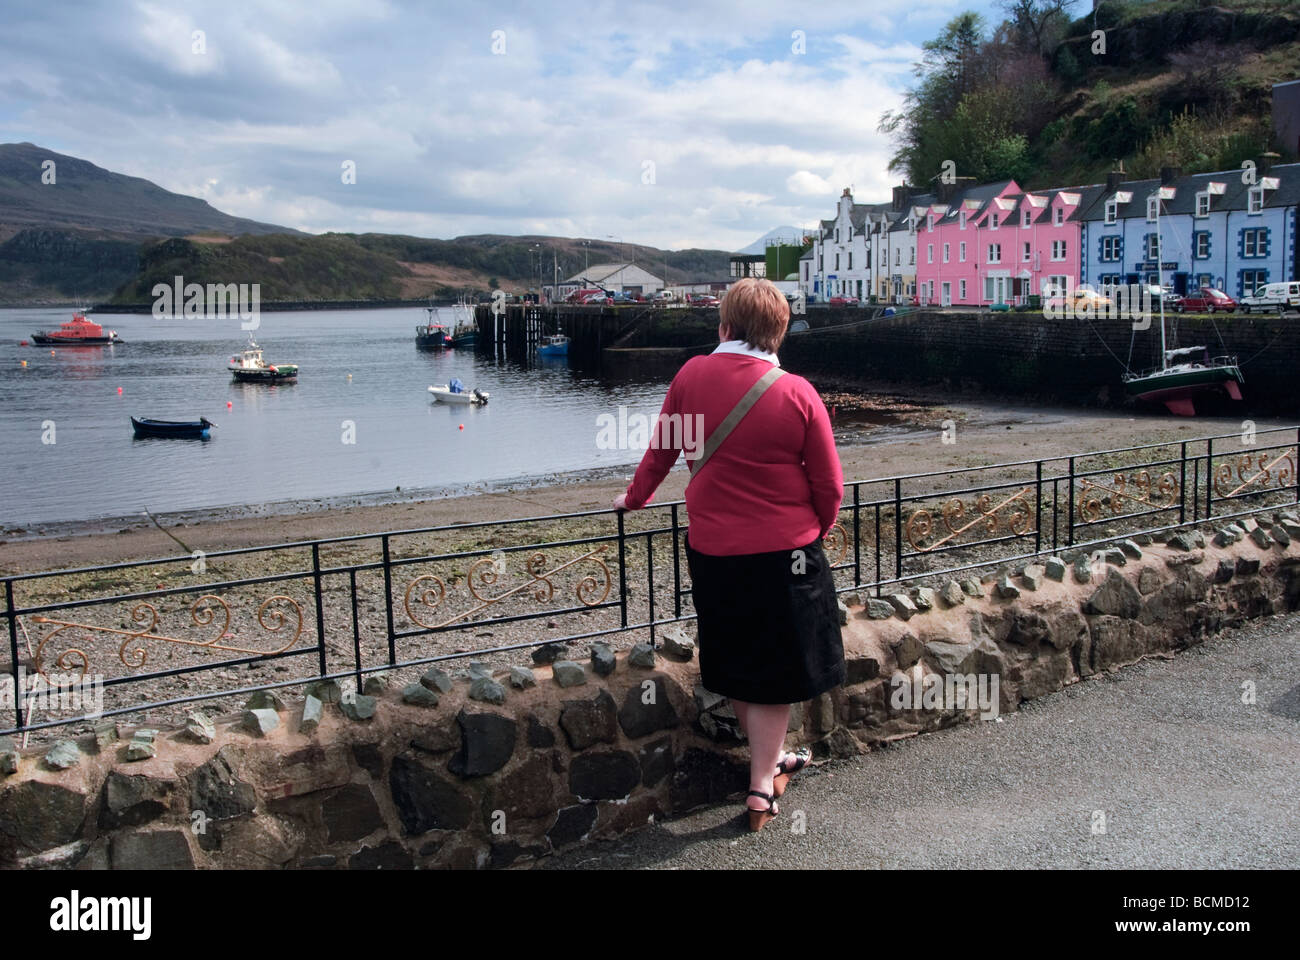 Portree on the Isle of Skye, Scotland, UK - Stock Image